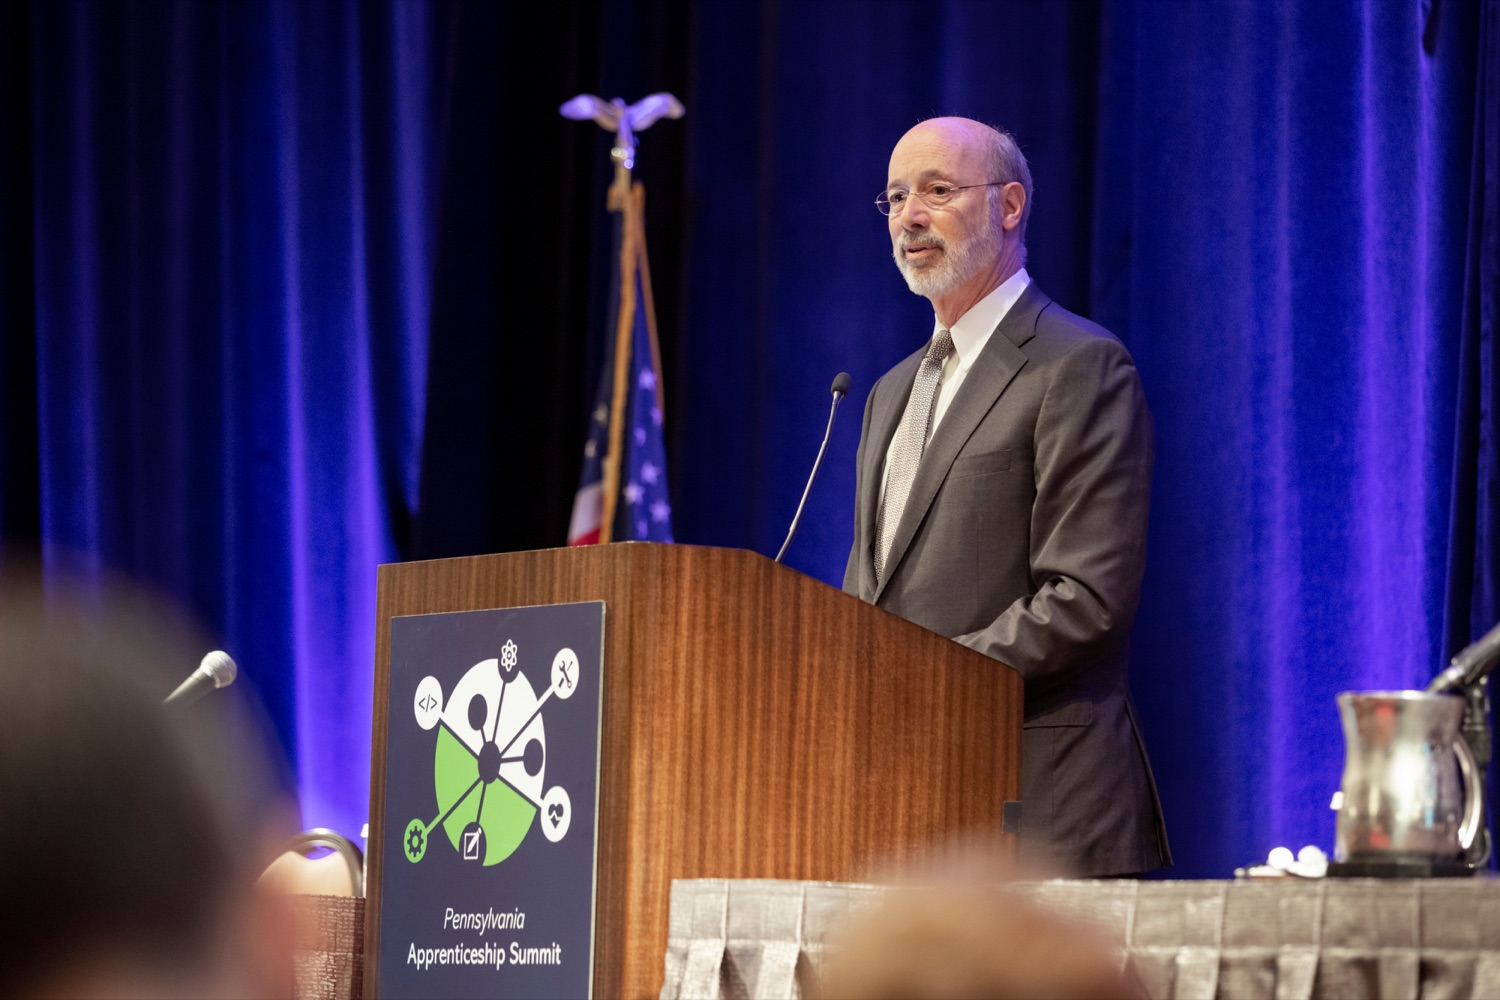 "<a href=""https://filesource.wostreaming.net/commonwealthofpa/photo/17520_LandI_Apprenticeships_NK_013.JPG"" target=""_blank"">⇣ Download Photo<br></a>Pennsylvania Governor Tom Wolf speaks during the 2019 Pennsylvania Apprenticeship Summit at Hershey Lodge on Thursday, October 31, 2019."